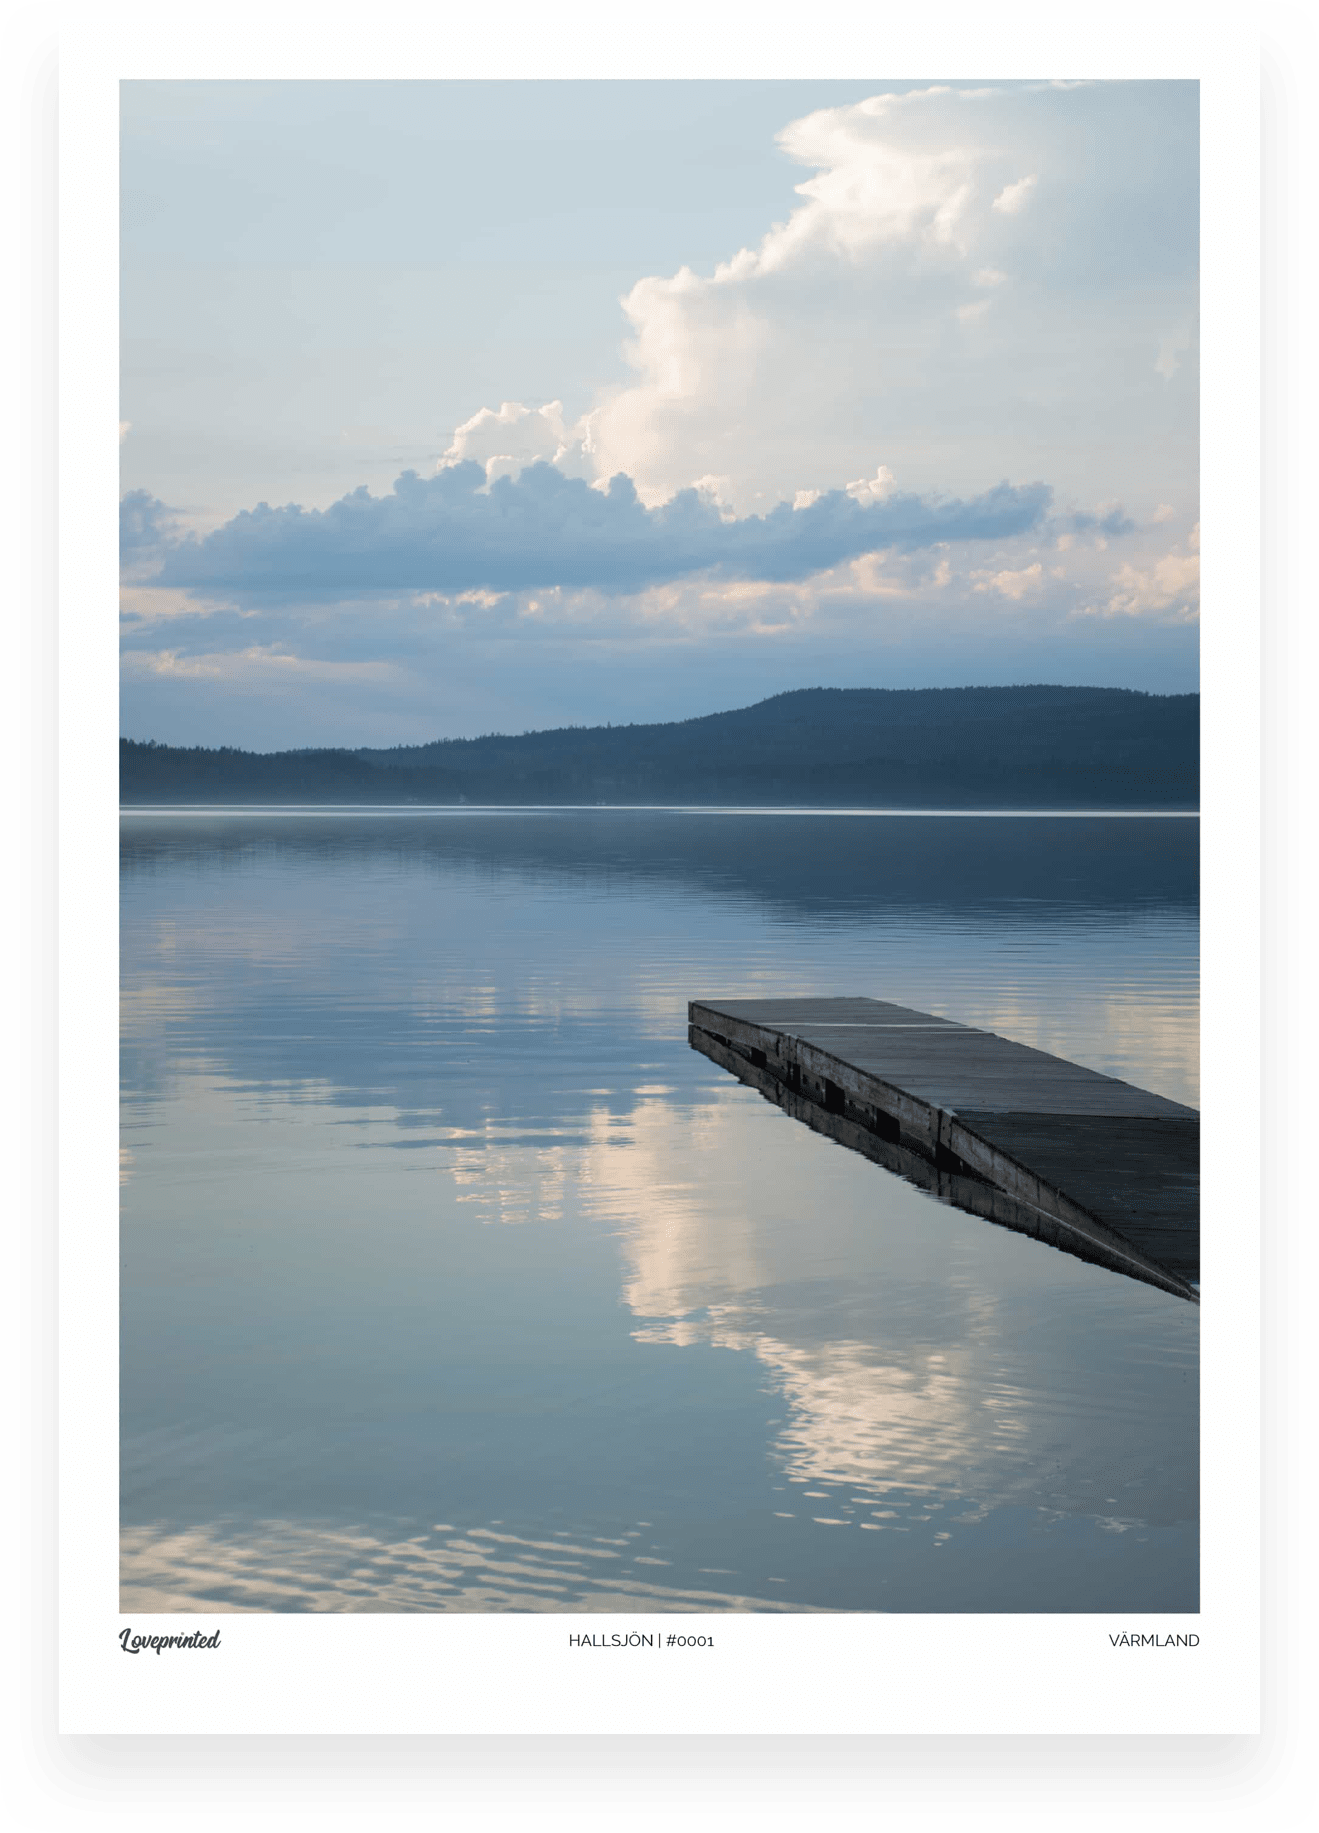 Hallsjon | An Image of the Swedish lake Hallsjon in Värmland with a boardwalk and clouds in the distance made by Loveprinted